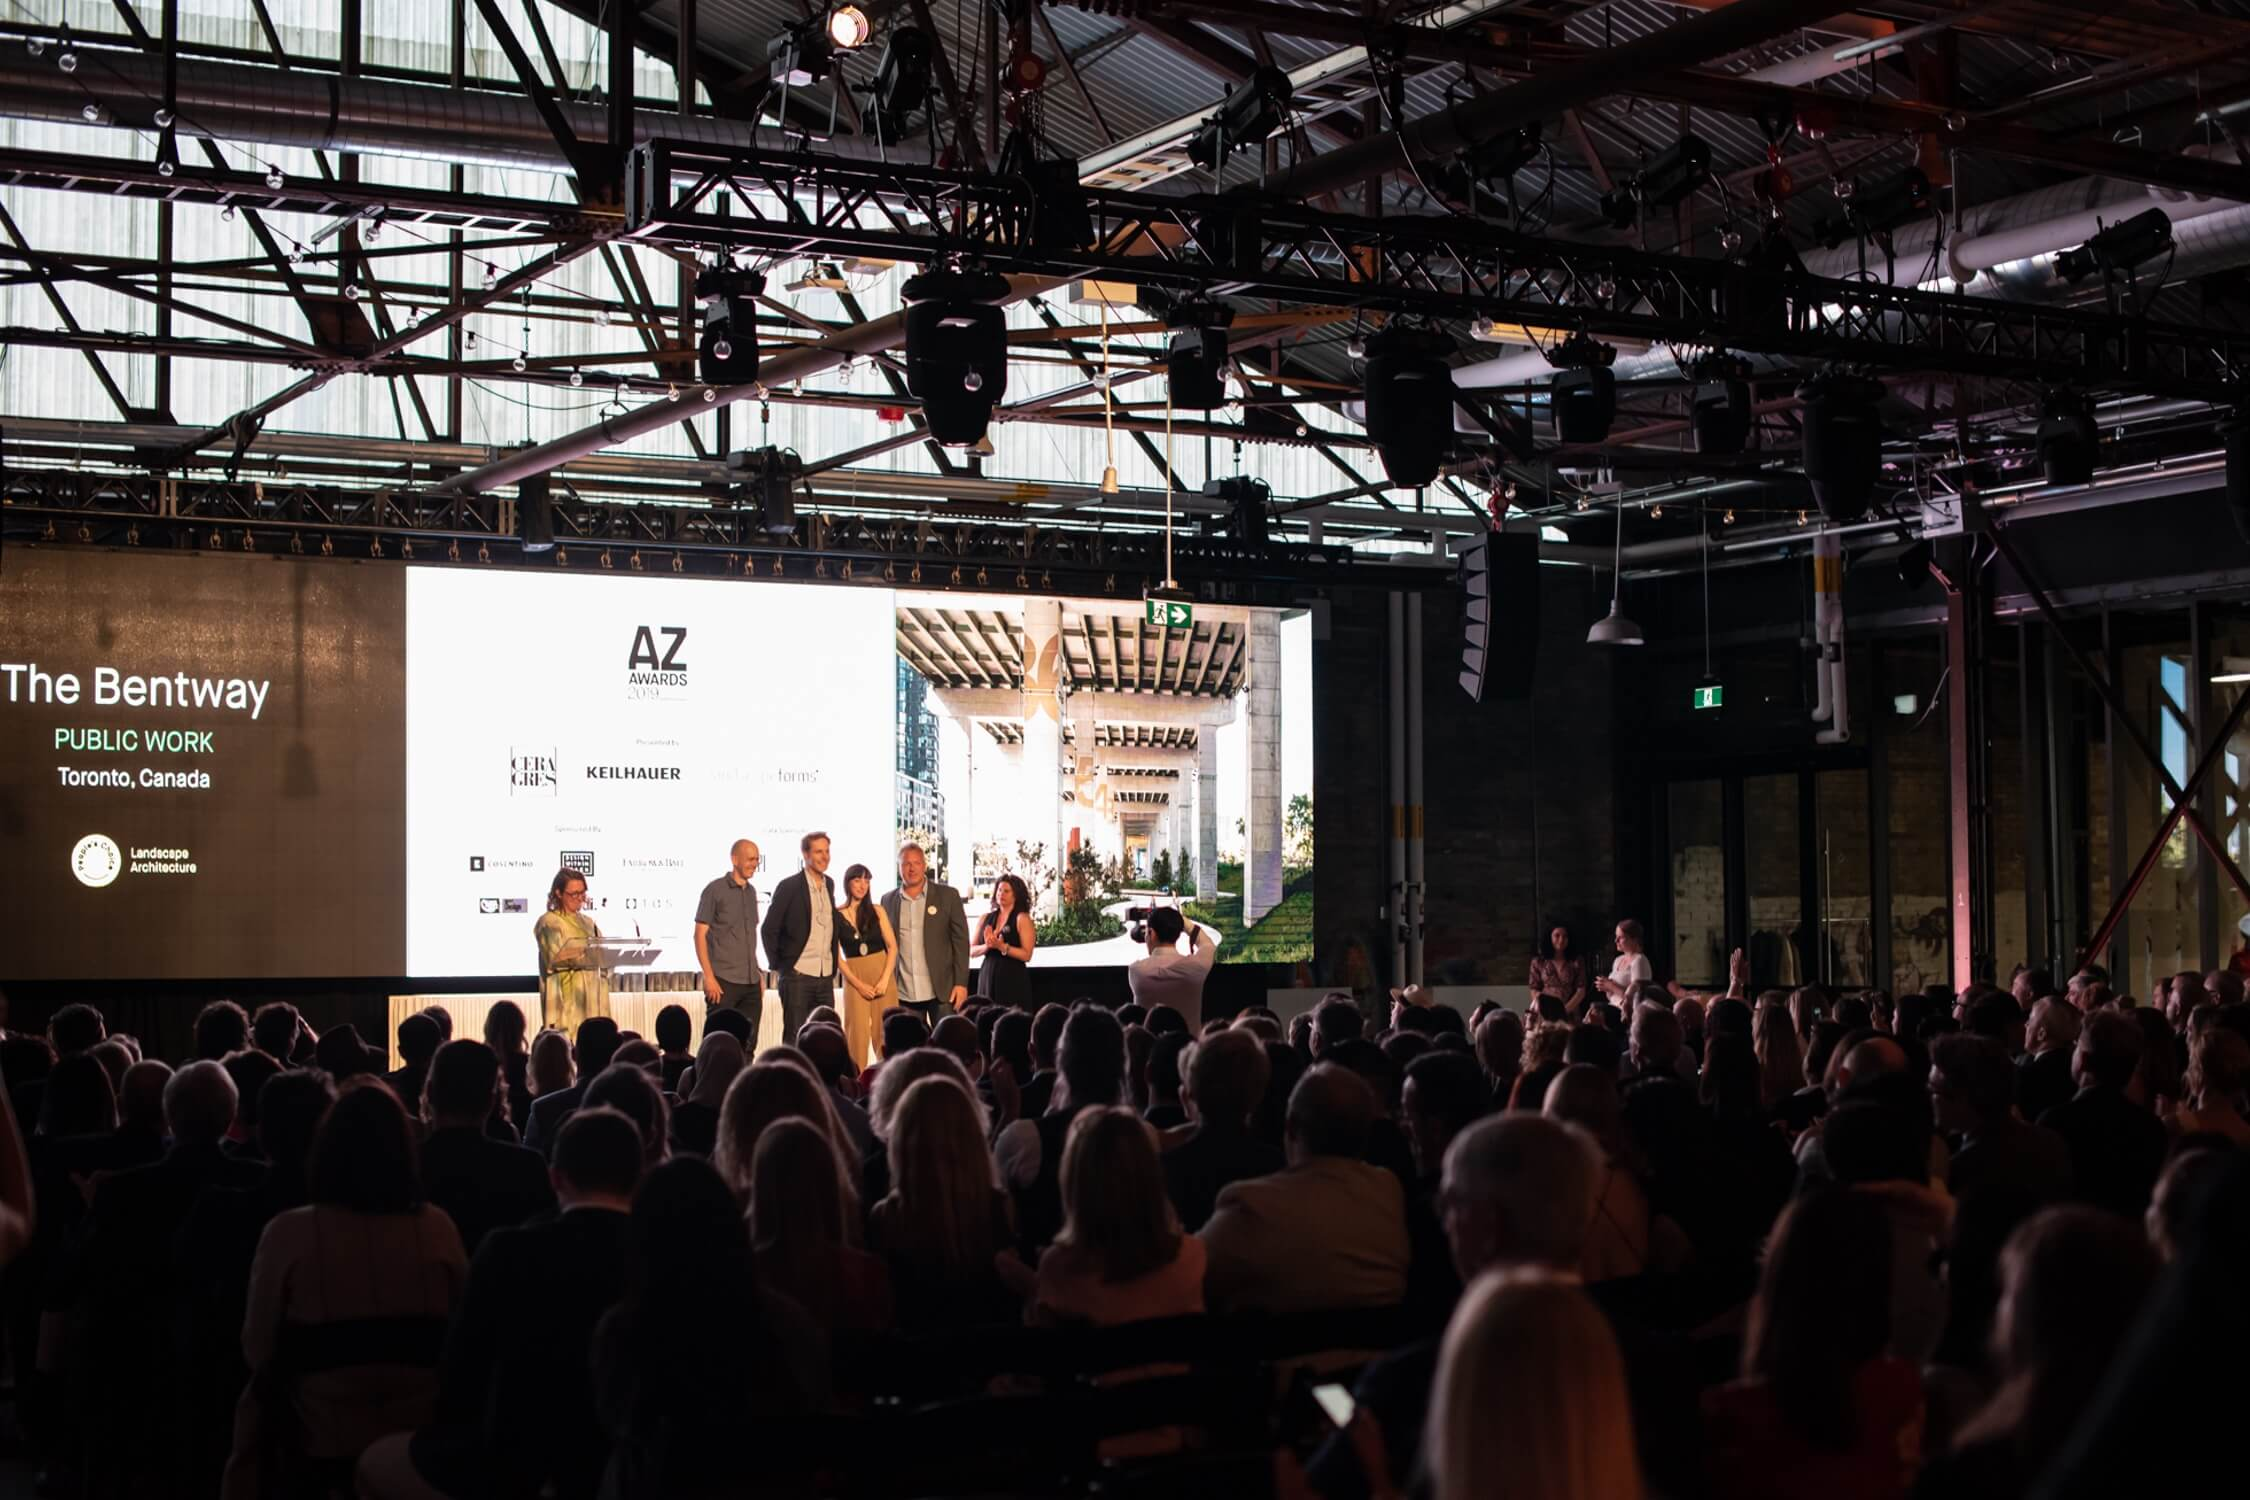 The team at Public Work takes the stage to claim their trophy for The Bentway, AZ Awards 2019: Scenes from the Gala